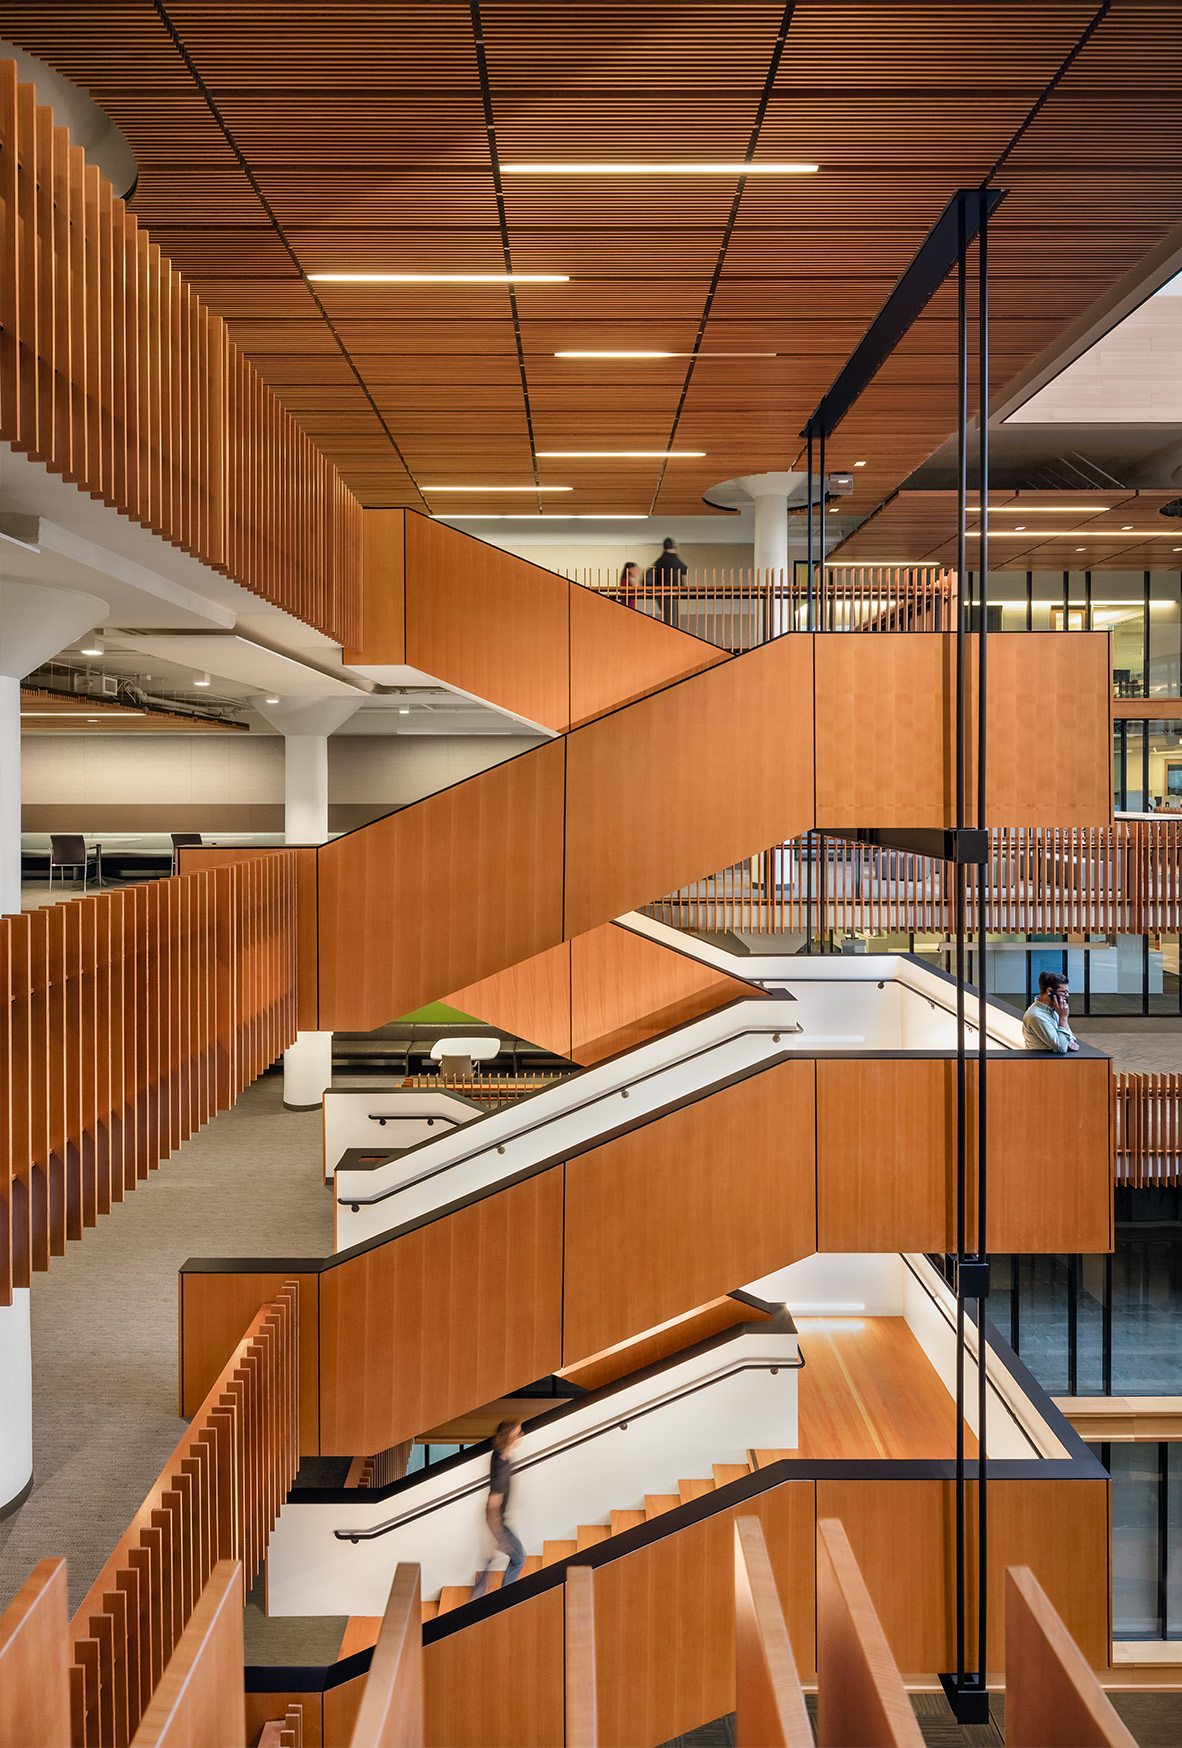 Bay Area Metro Center Feature Stair with Repurposed Wood